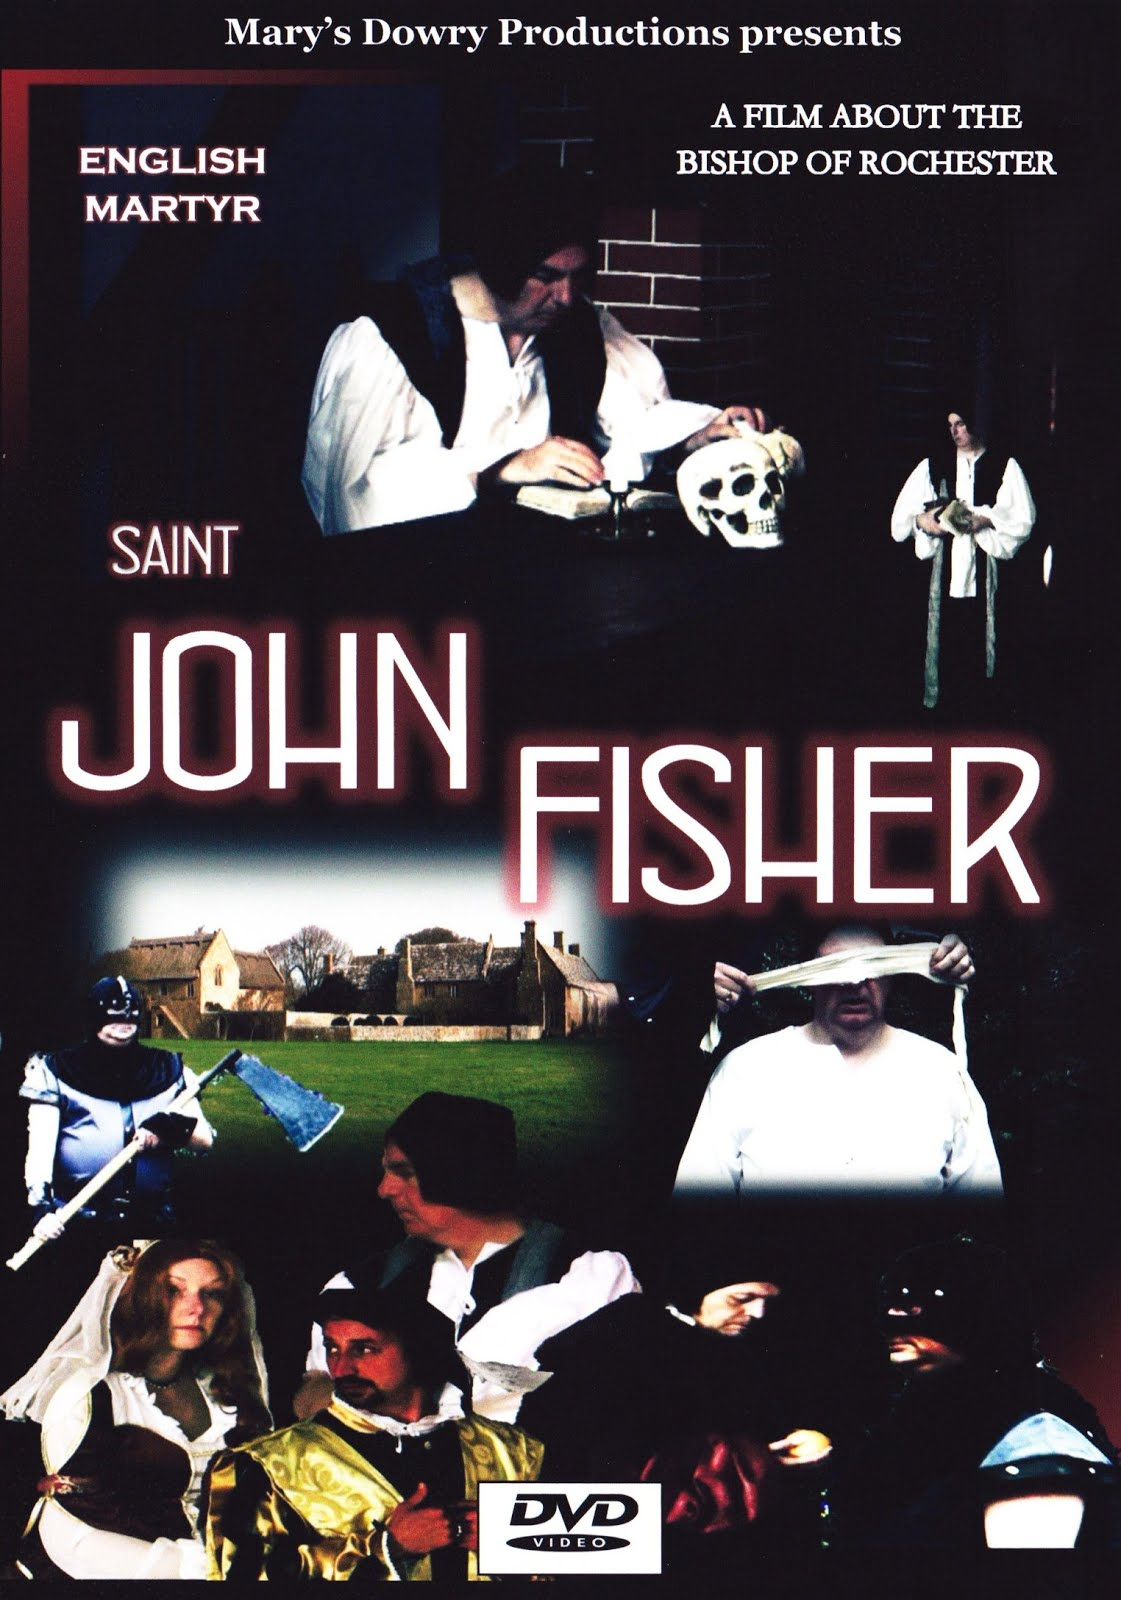 Saint John Fisher DVD